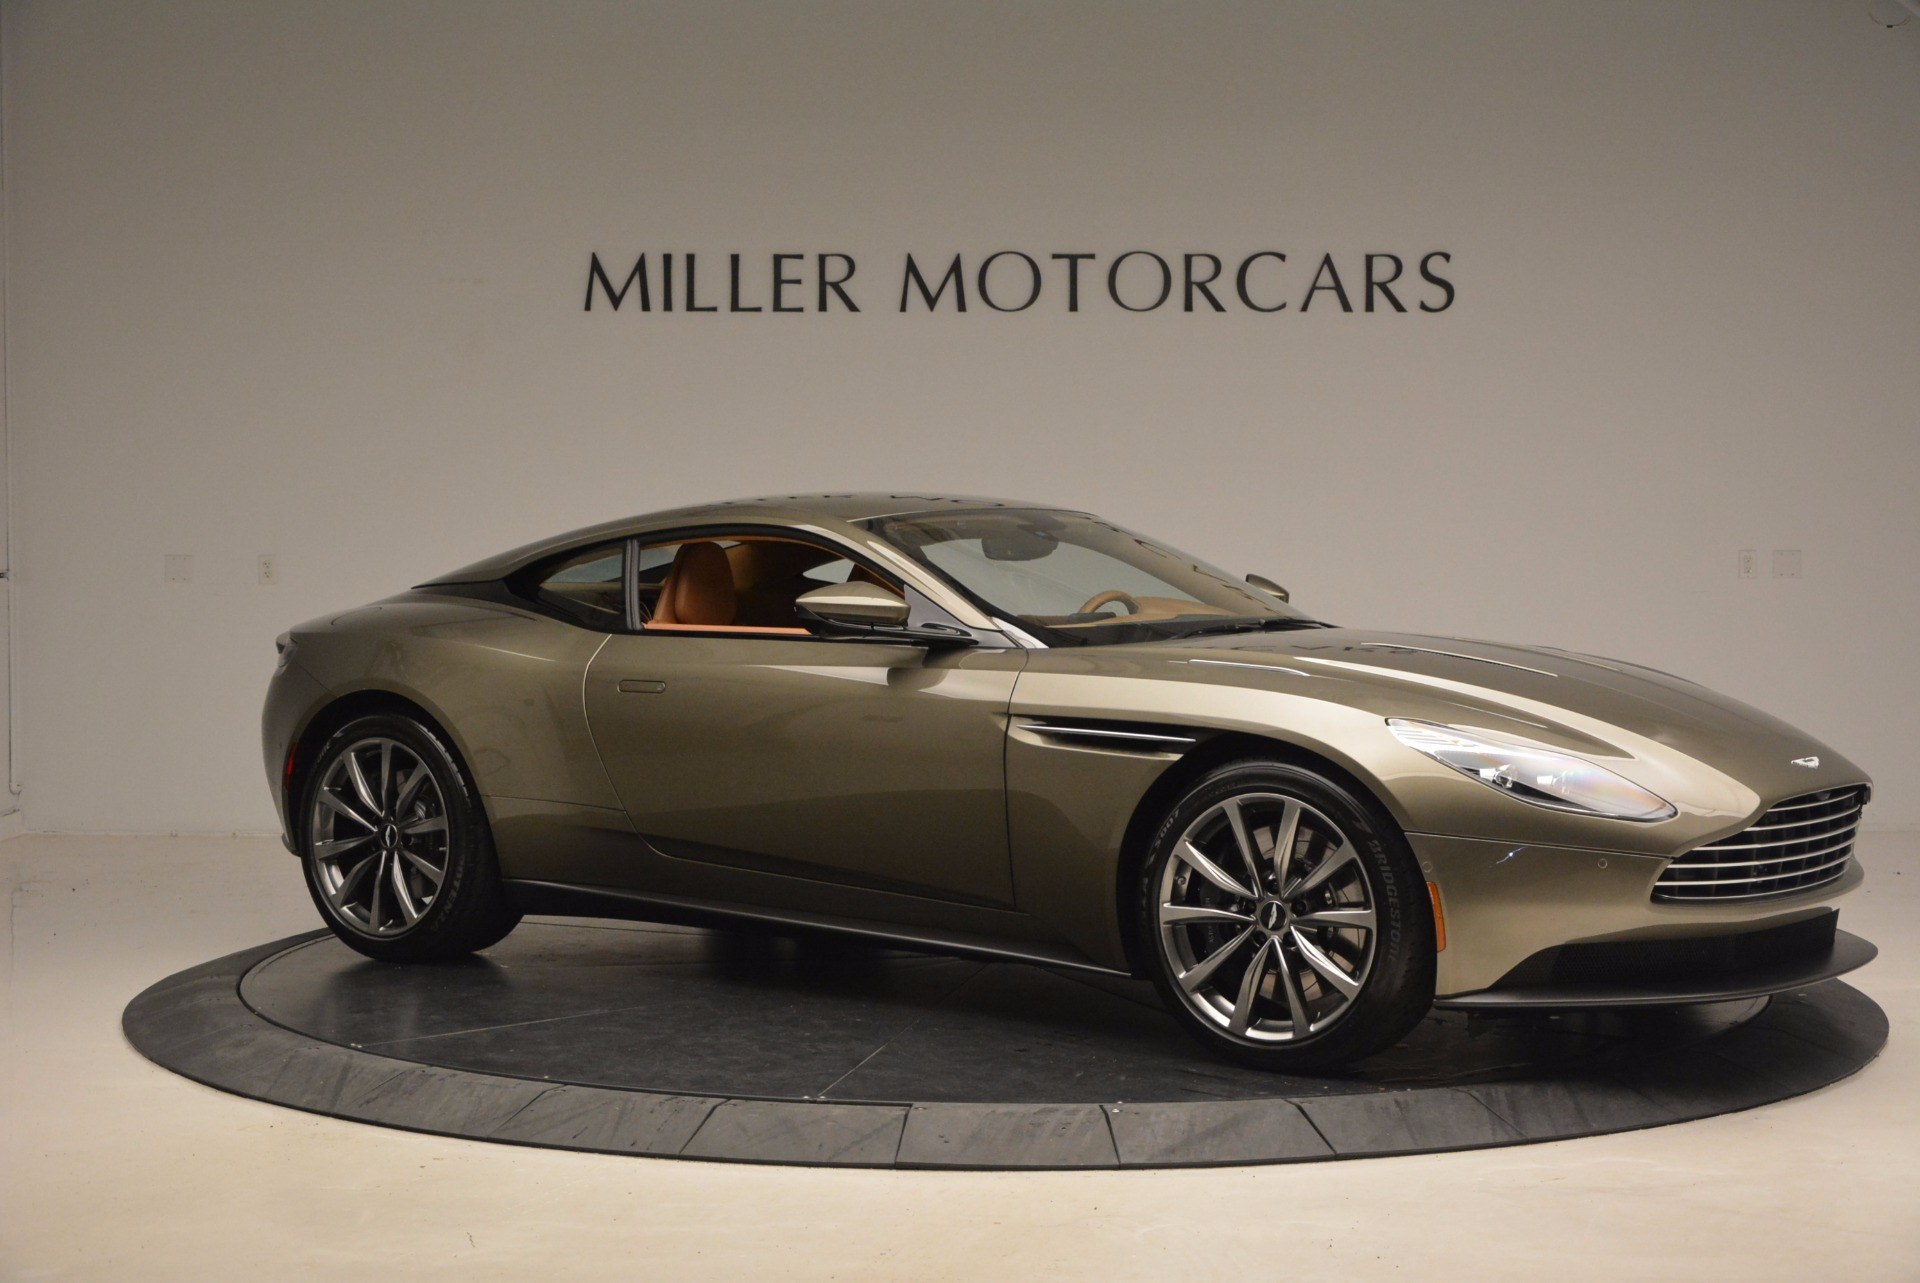 New 2017 Aston Martin Db11 For Sale Miller Motorcars Stock A1248